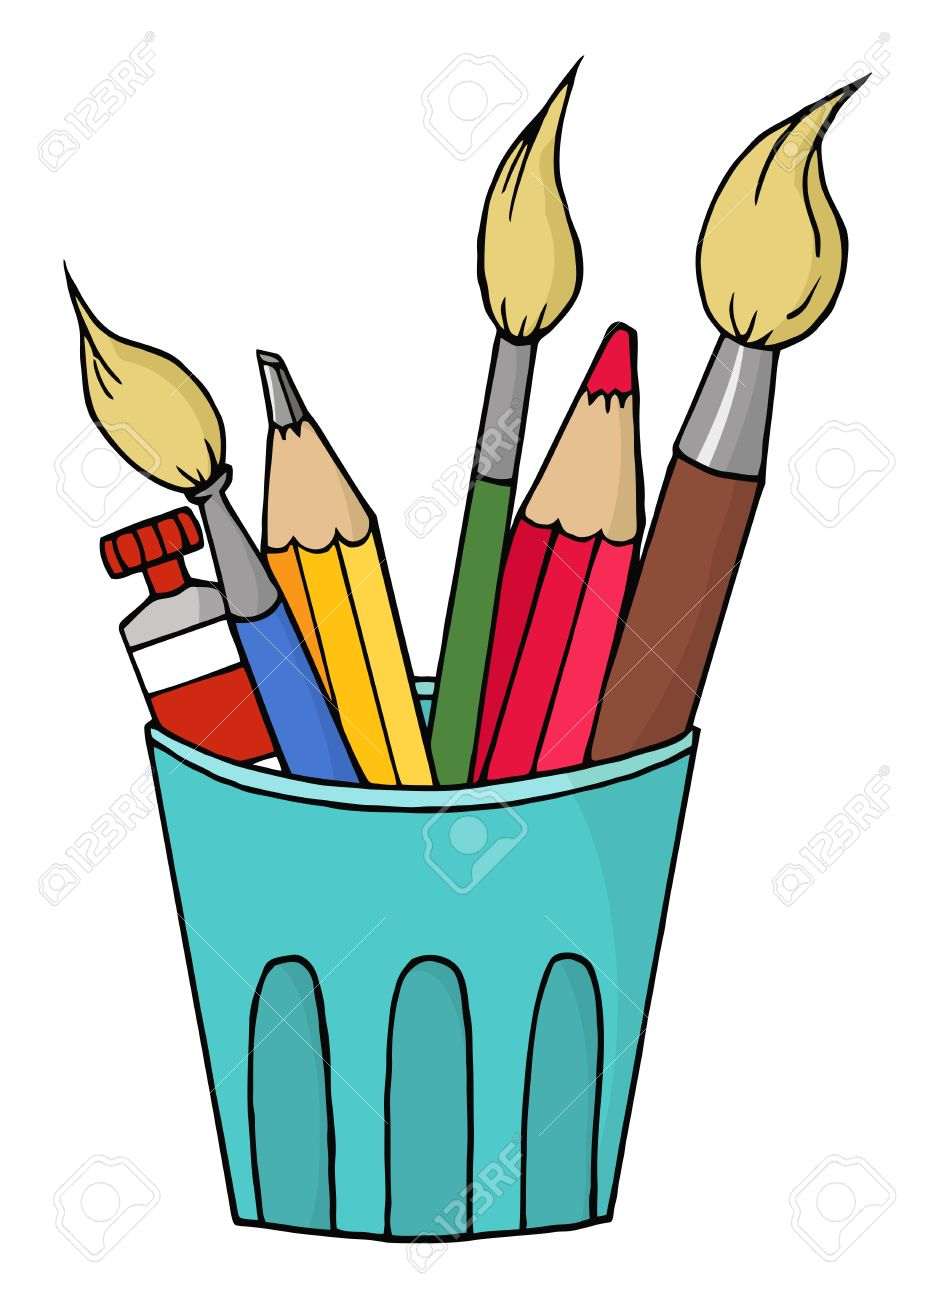 Creative clipart, Creative Transparent FREE for download on.